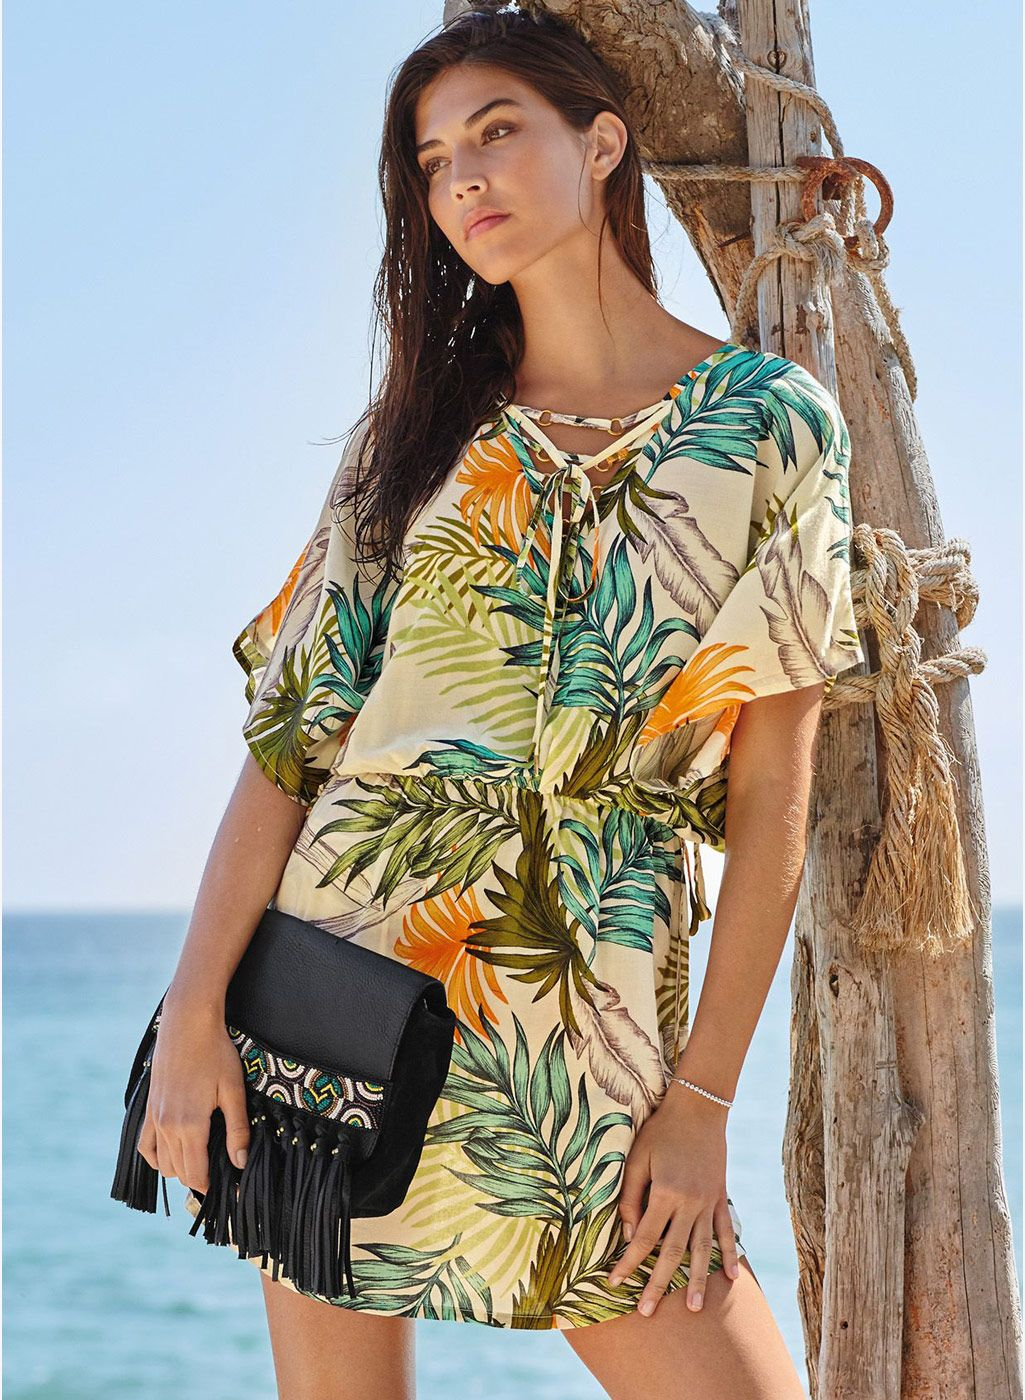 Next Multicolor Leaf Print Lace Up Cover Up Multicolor Leafprint Coverup Beachwear